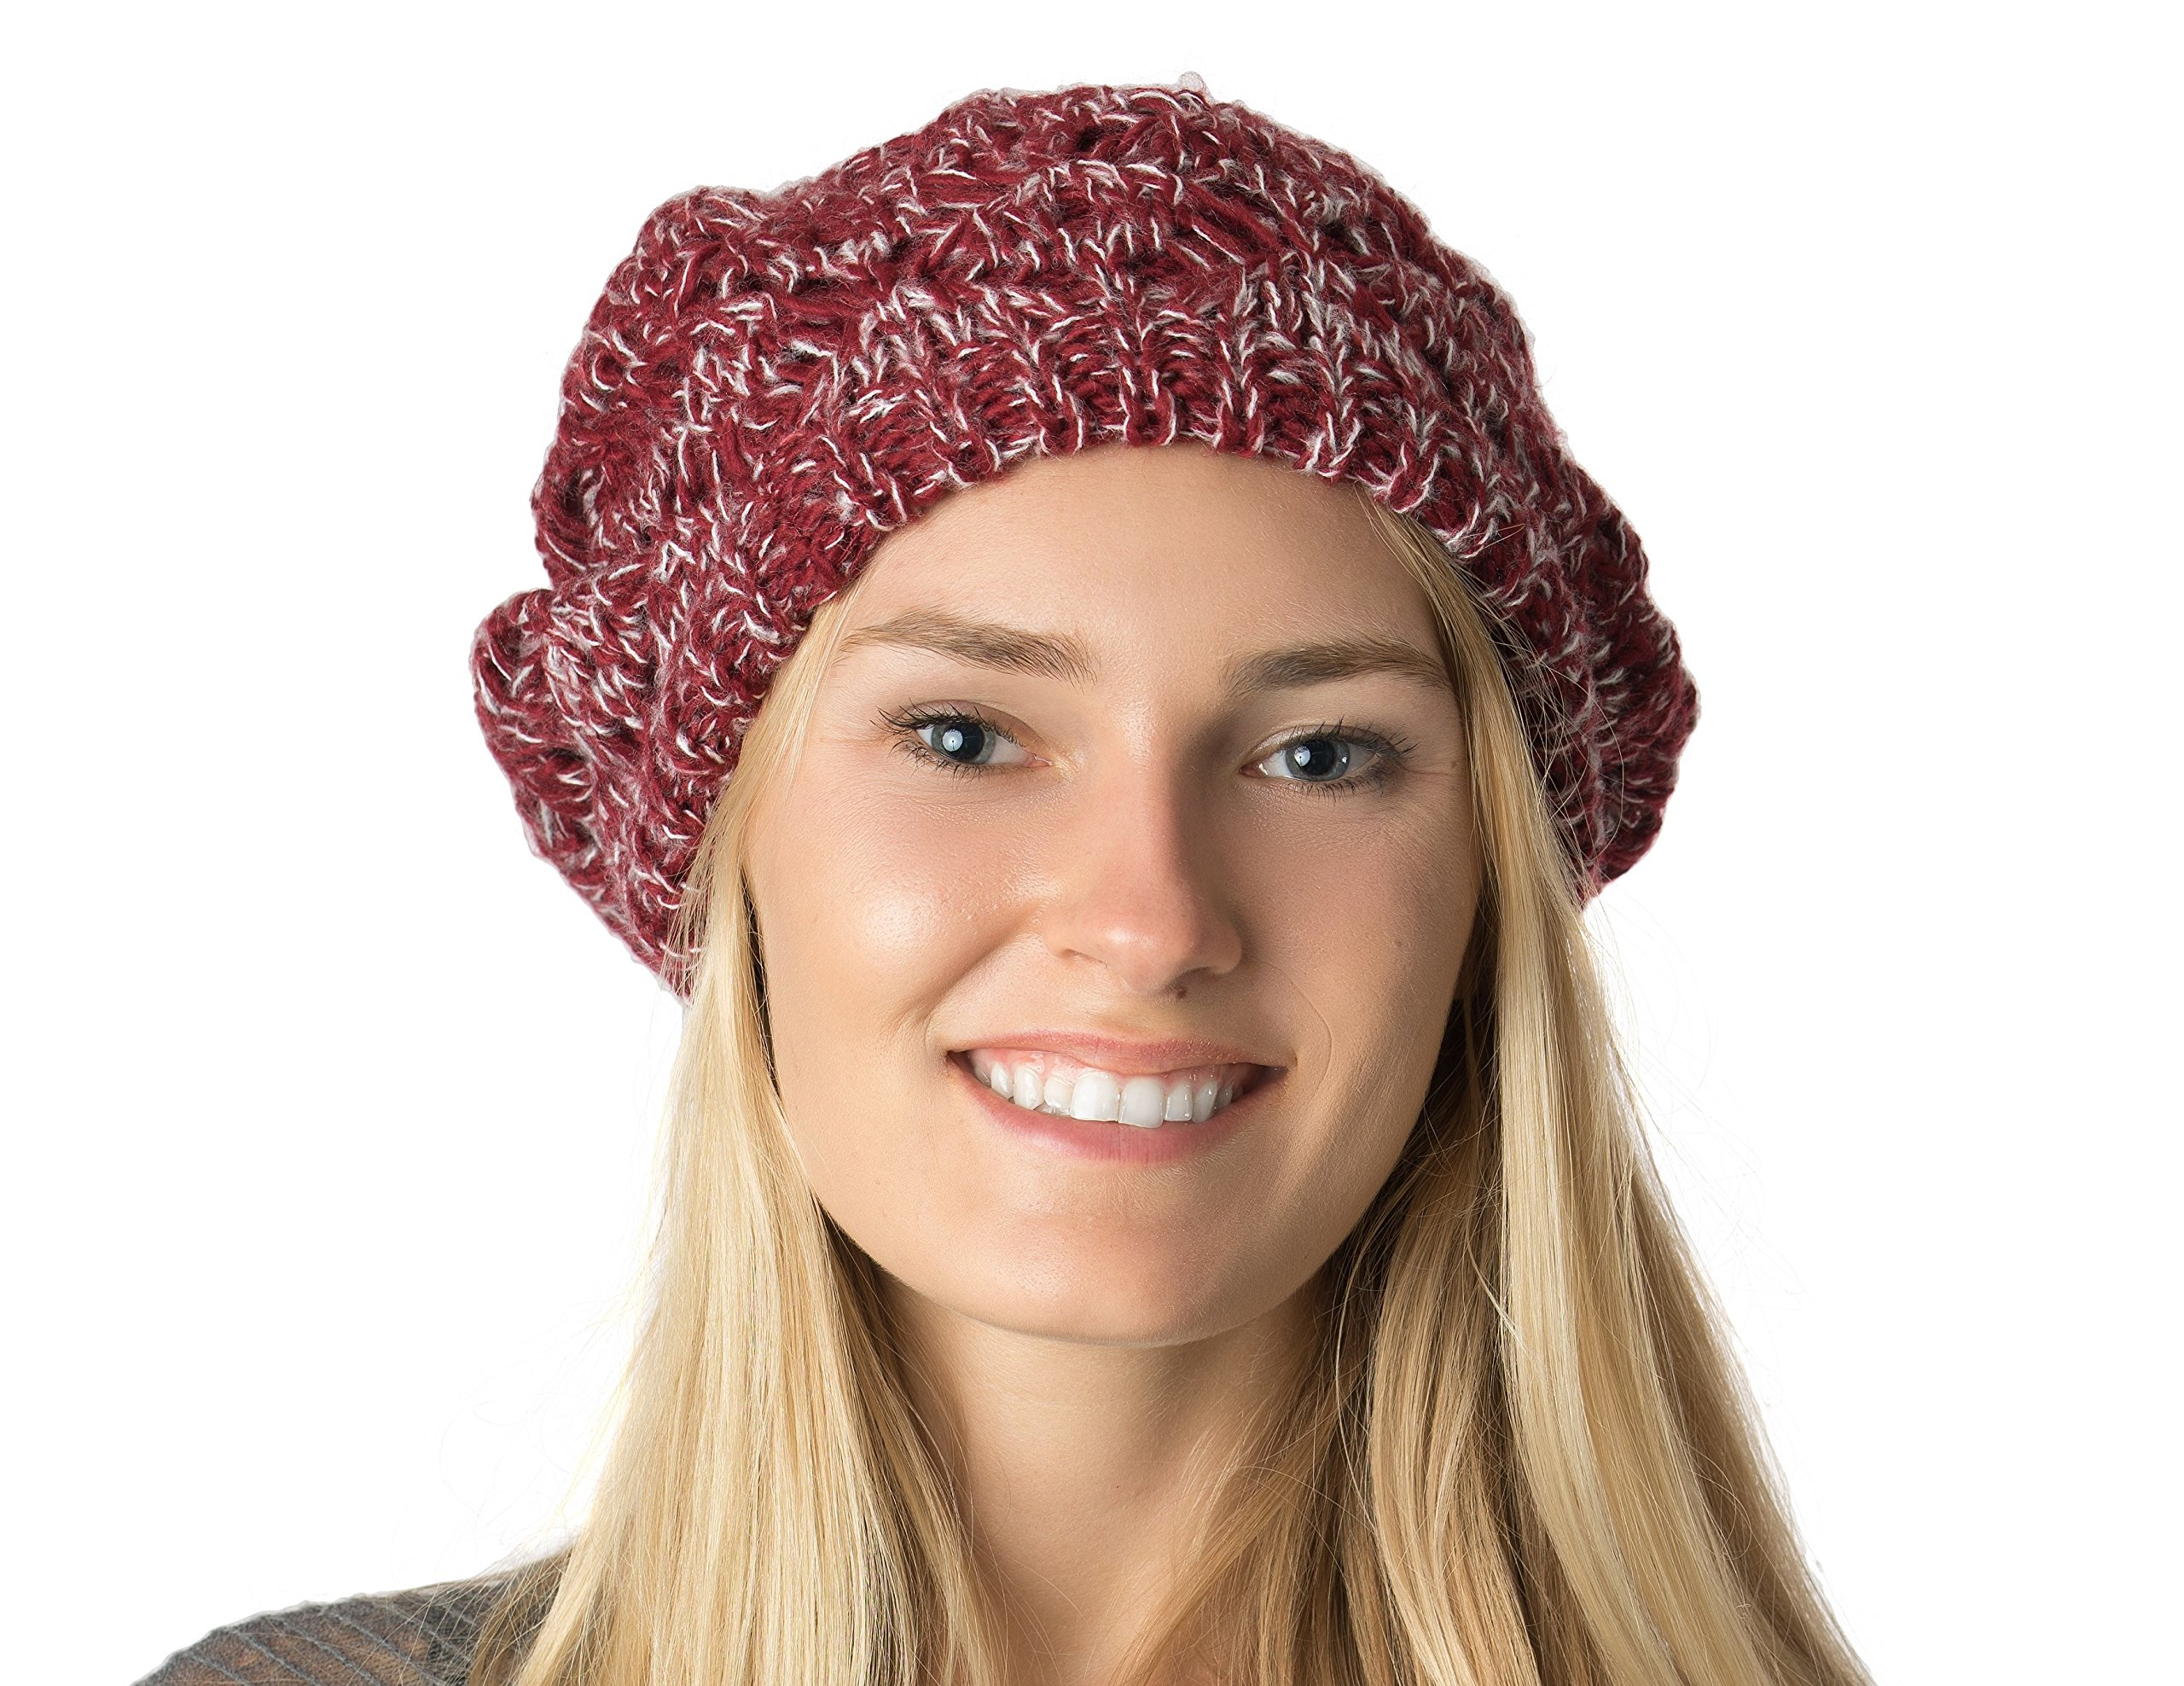 Accessory Necessary AN Fall Winter Knit Beanie Beret Hat for Women Soft Knit Lining Many Styles (Burgundy Speckled Crochet)